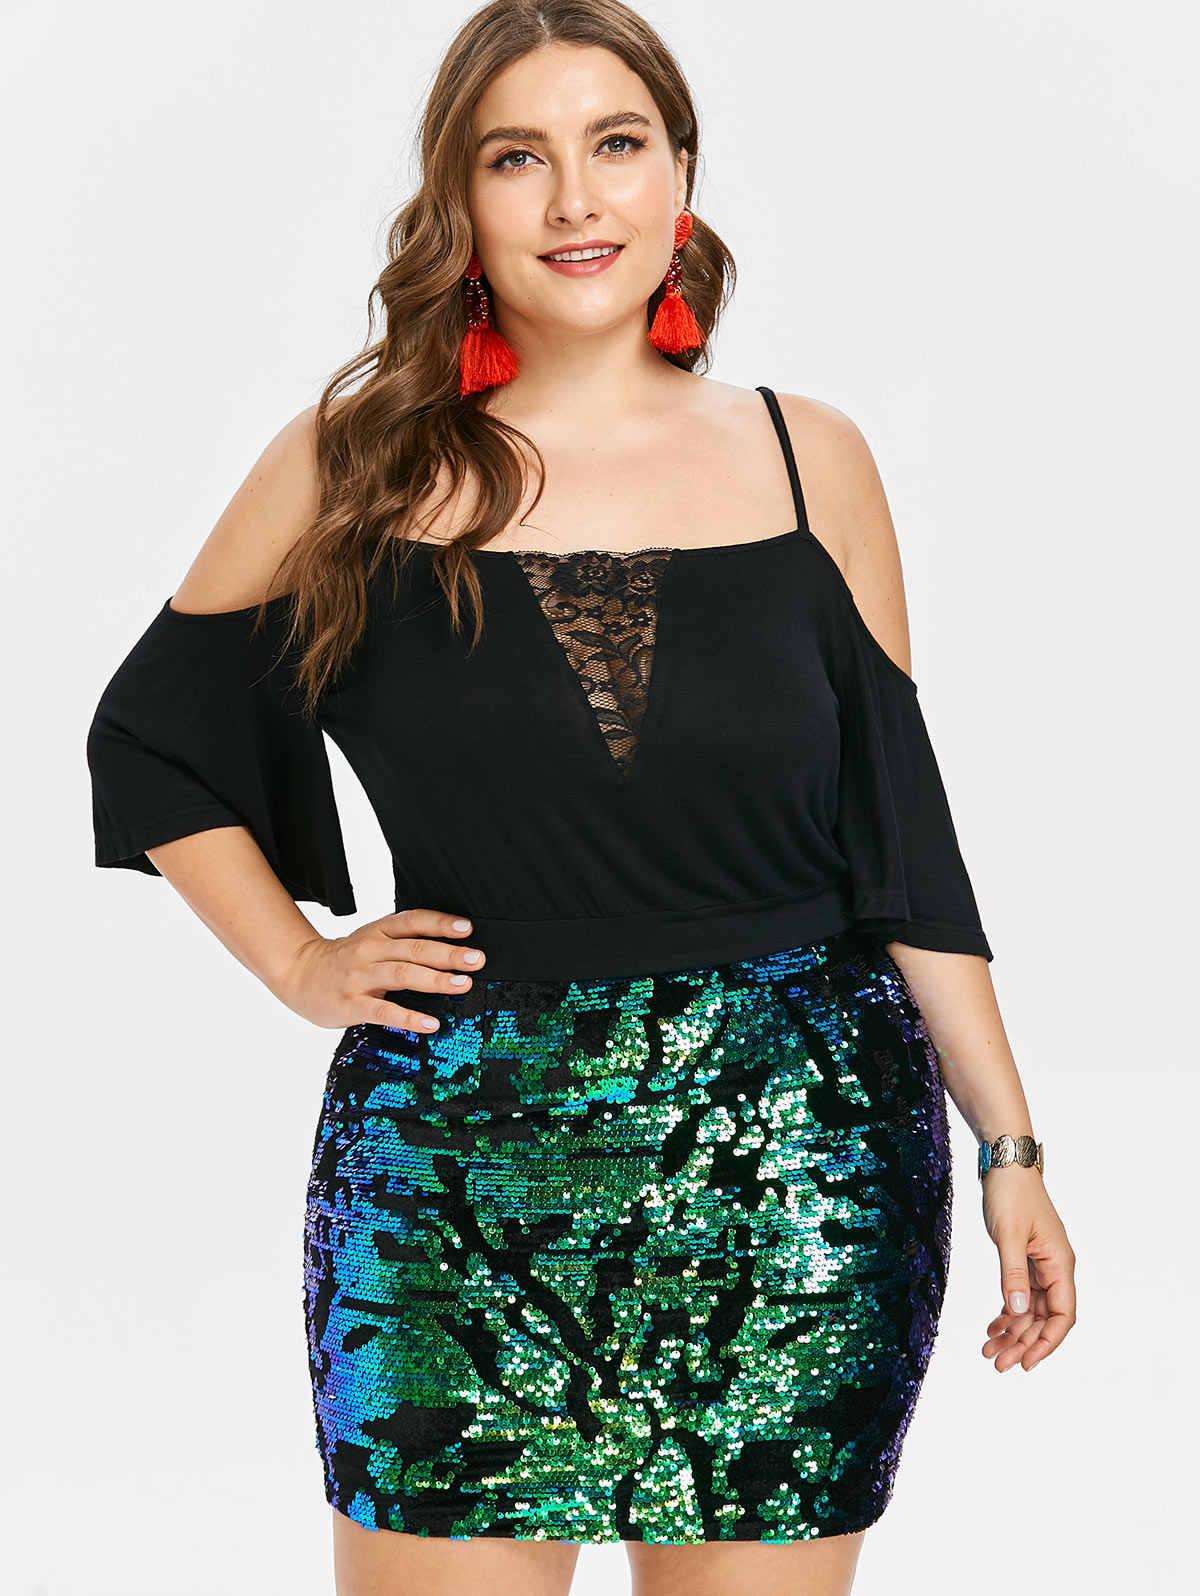 Wipalo Plus Size Elegant Sequins Trim Mini Bodycon Party Dress Spaghetti  Strap Three Quarter Sleeve Sparkly c9a682b9fd5e